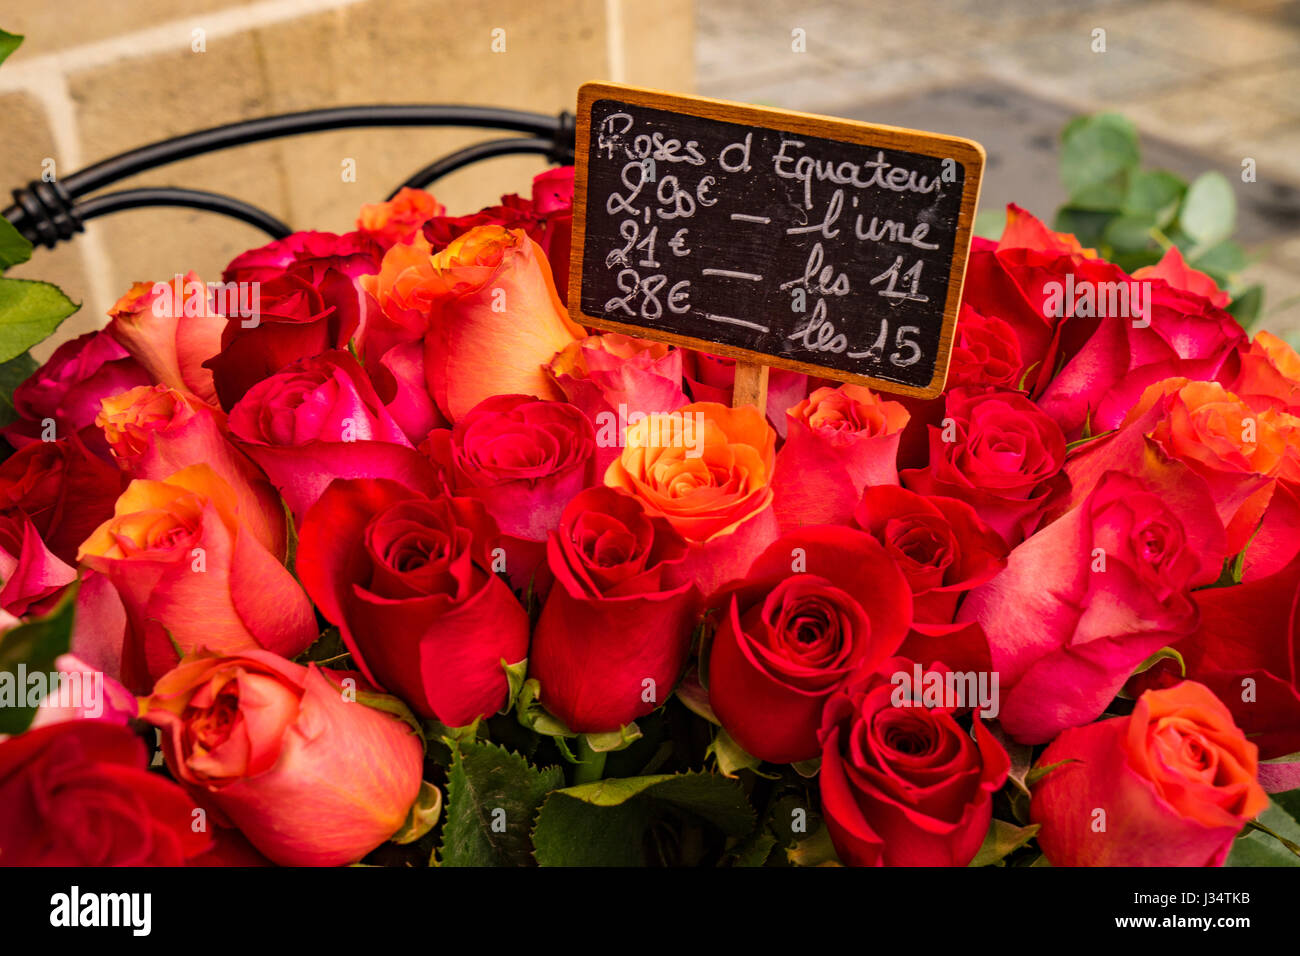 Roses for sale in Paris flower shop with labels displaying